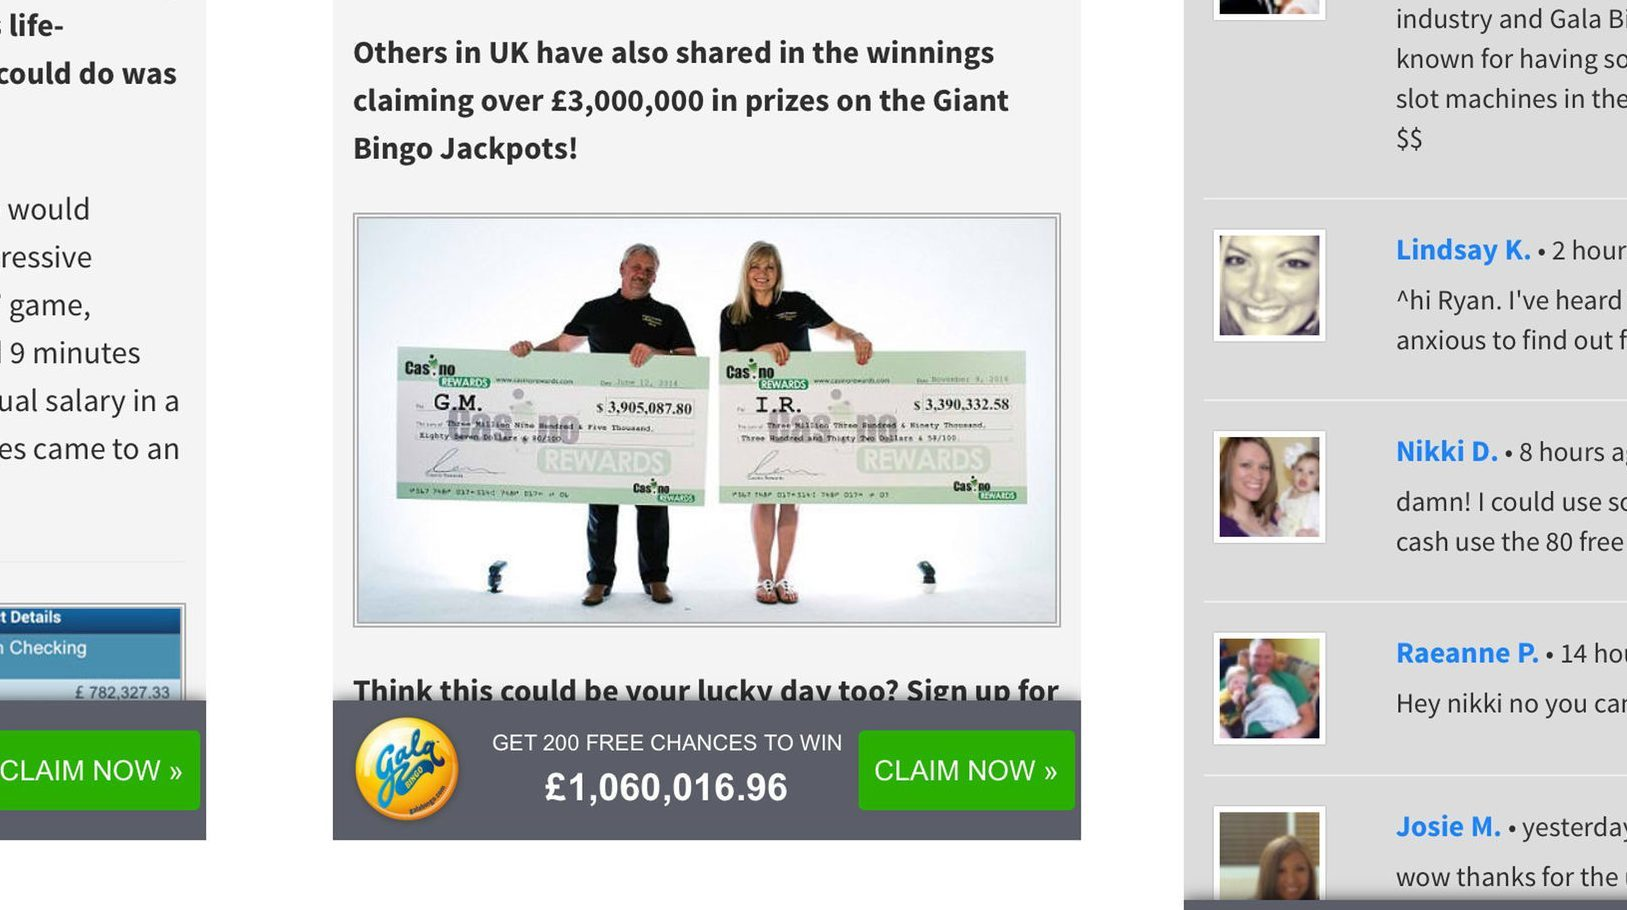 The online bingo site advert has been banned for suggesting that gambling could provide an escape from depression and a way of paying off debt and medical bills. (ASA/PA Wire)